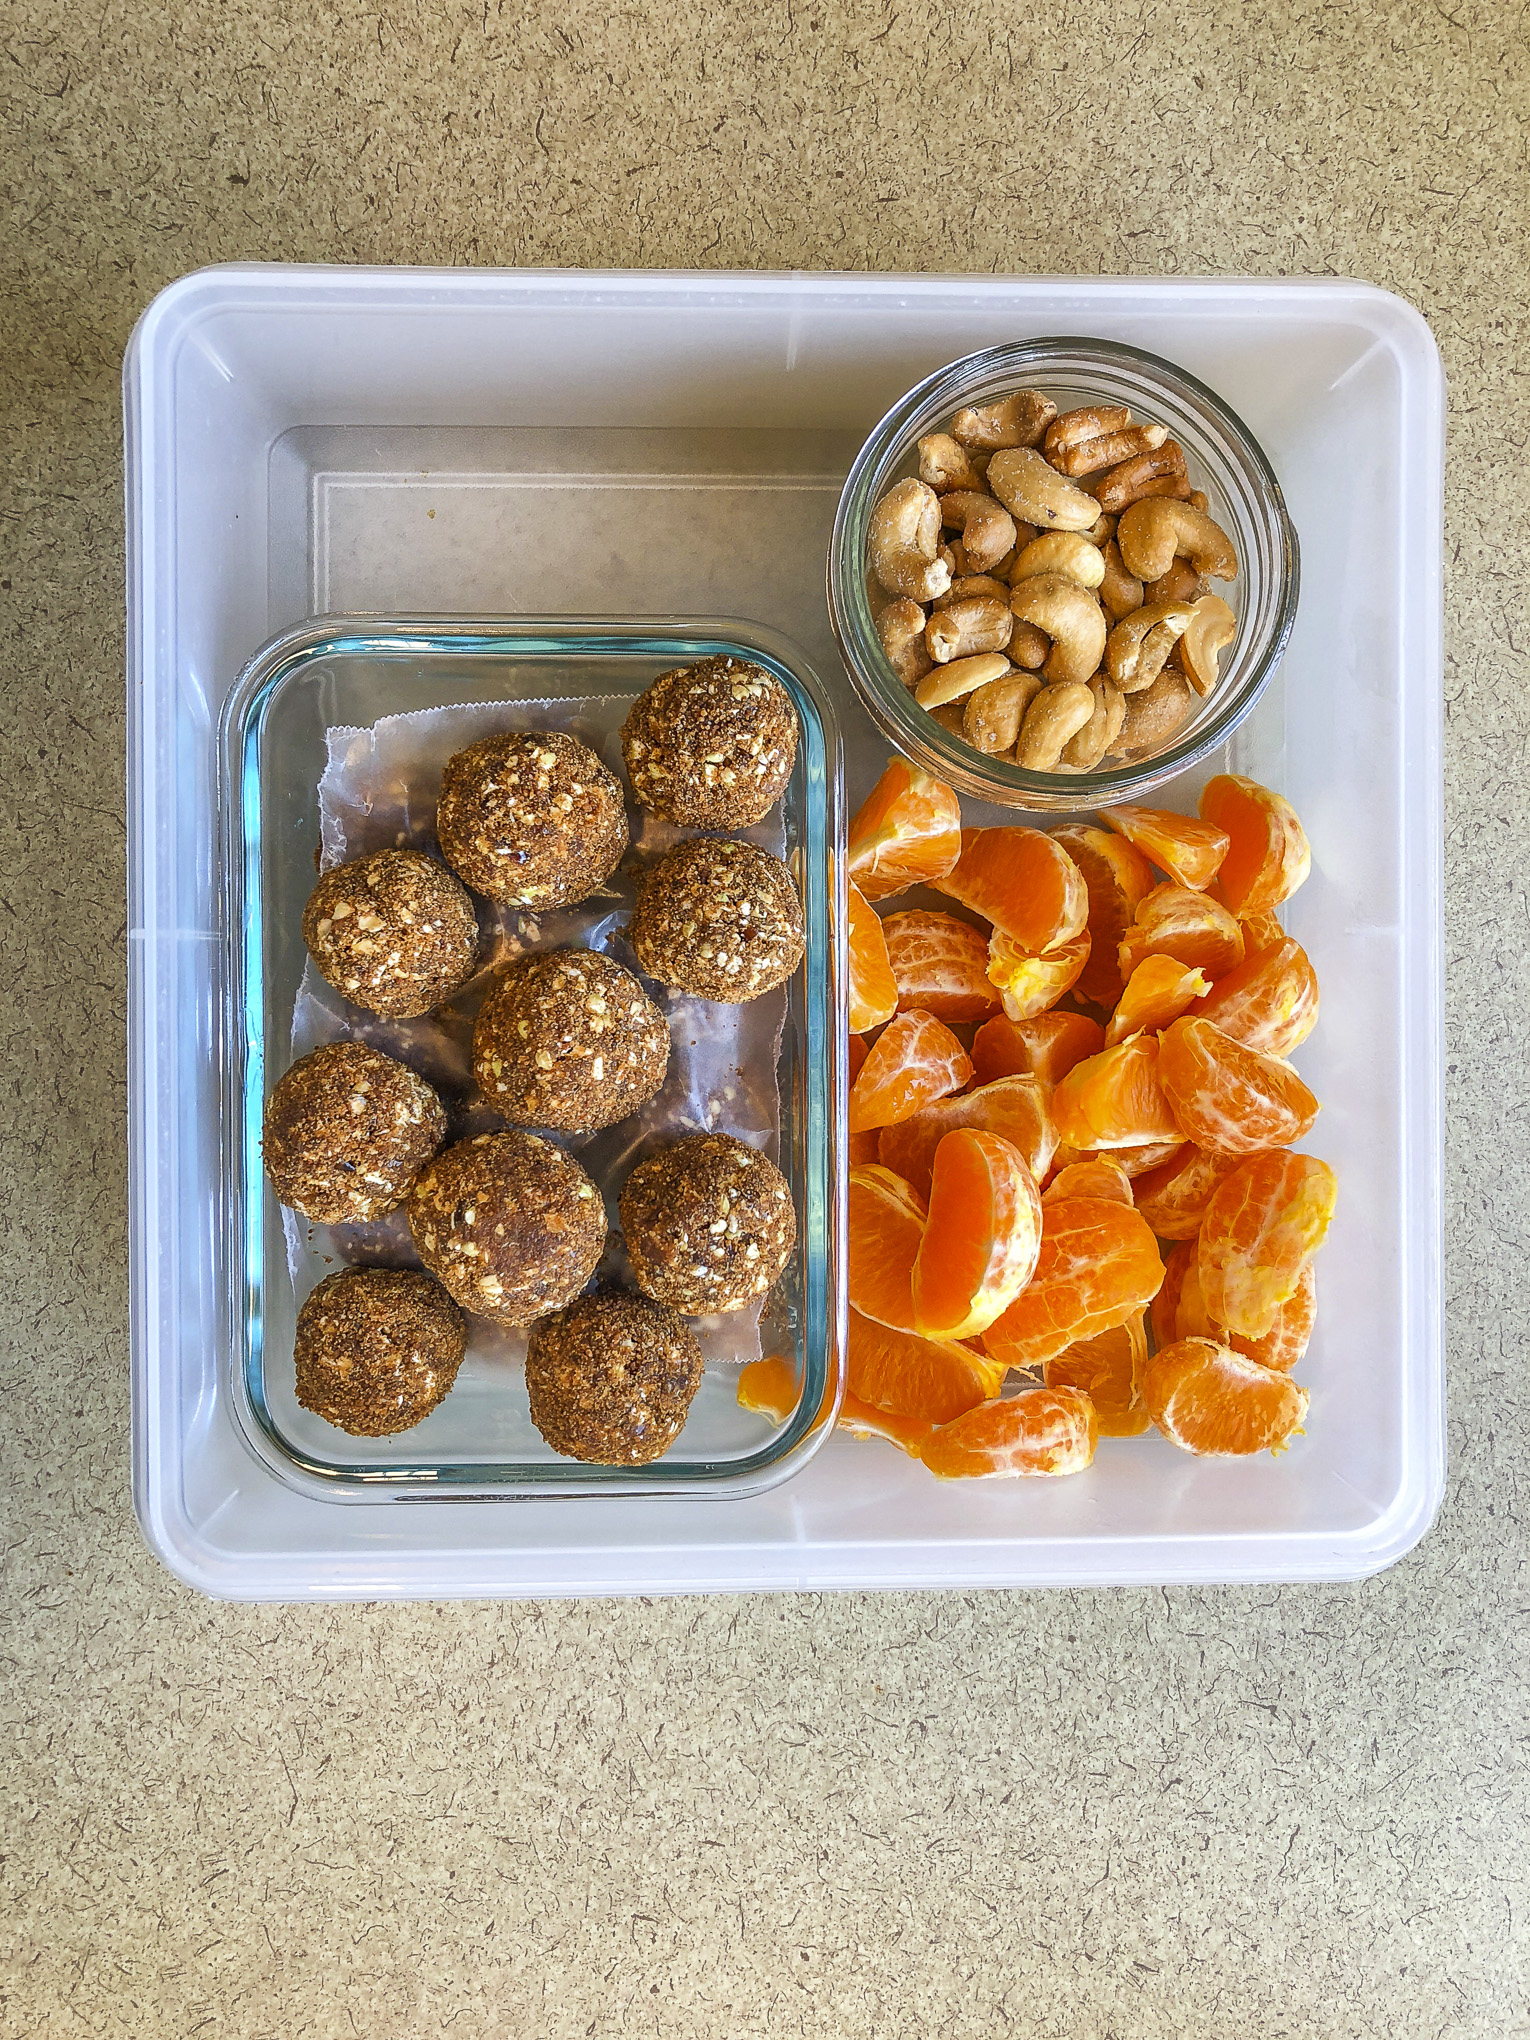 Tupperware filled with cashews, orange segments, and gingerbread bites